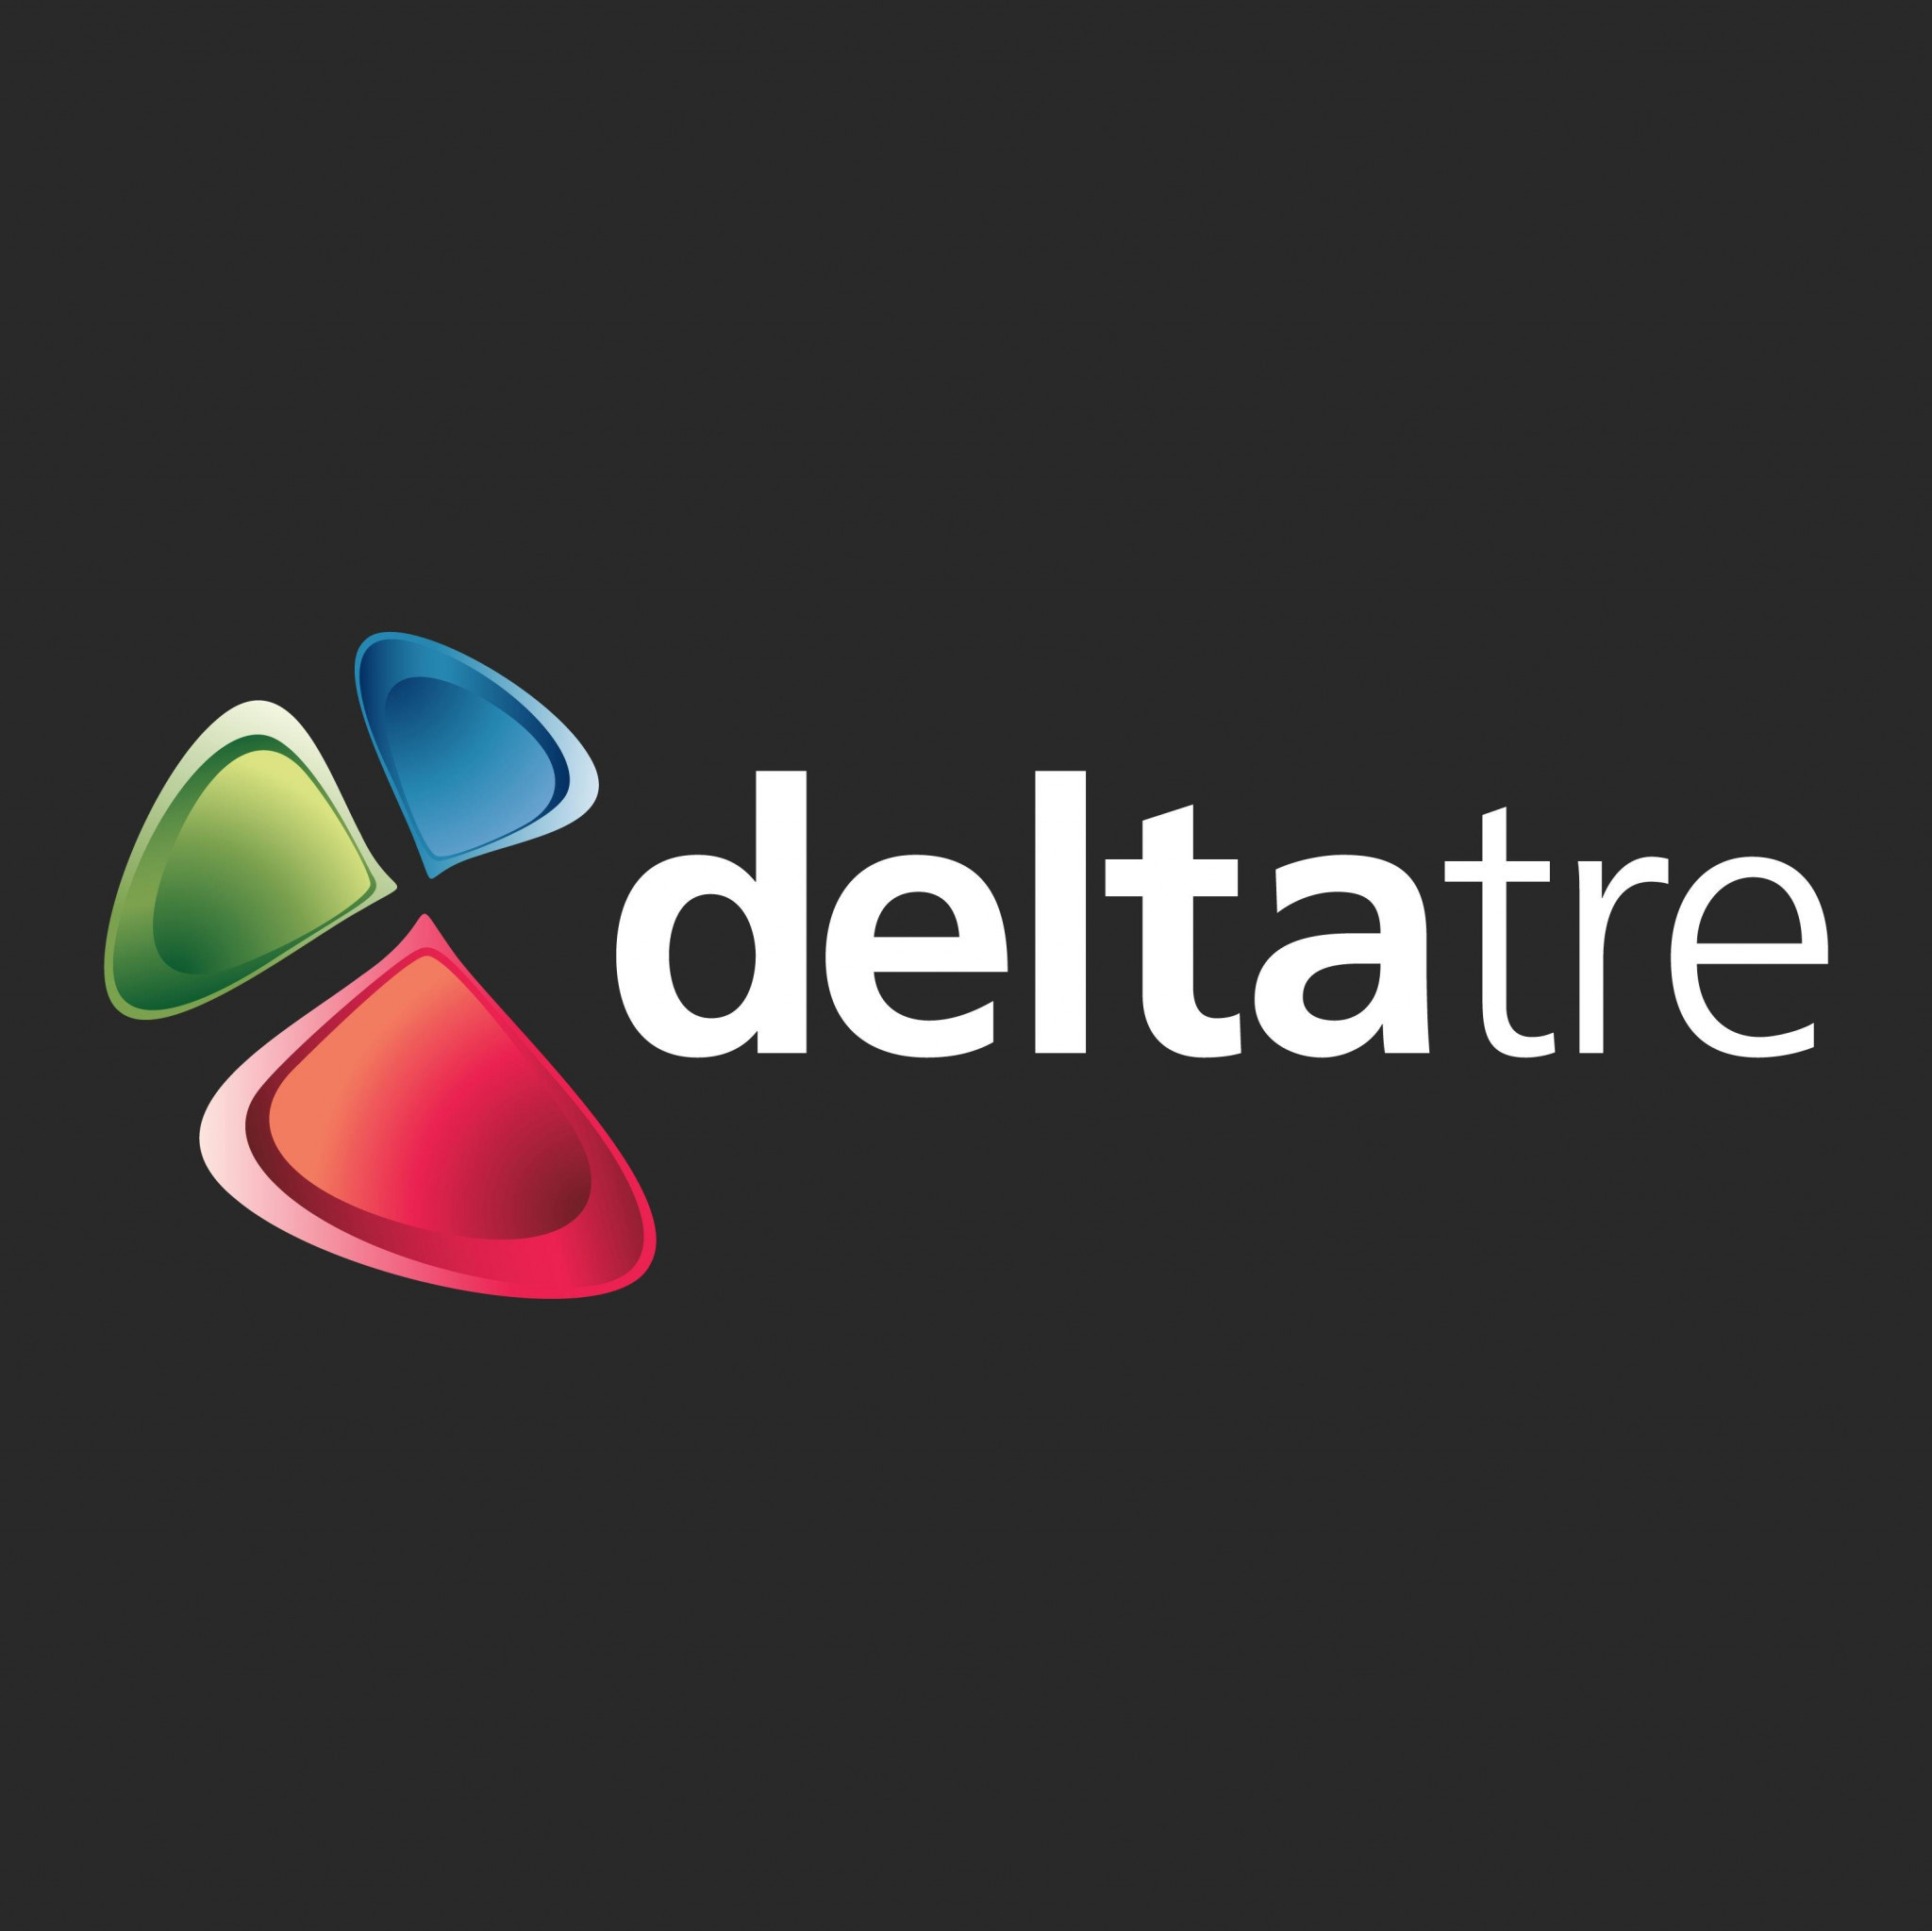 Deltatre to build website and provide mobile applications for Jakarta Palembang 2018 after signing agreement